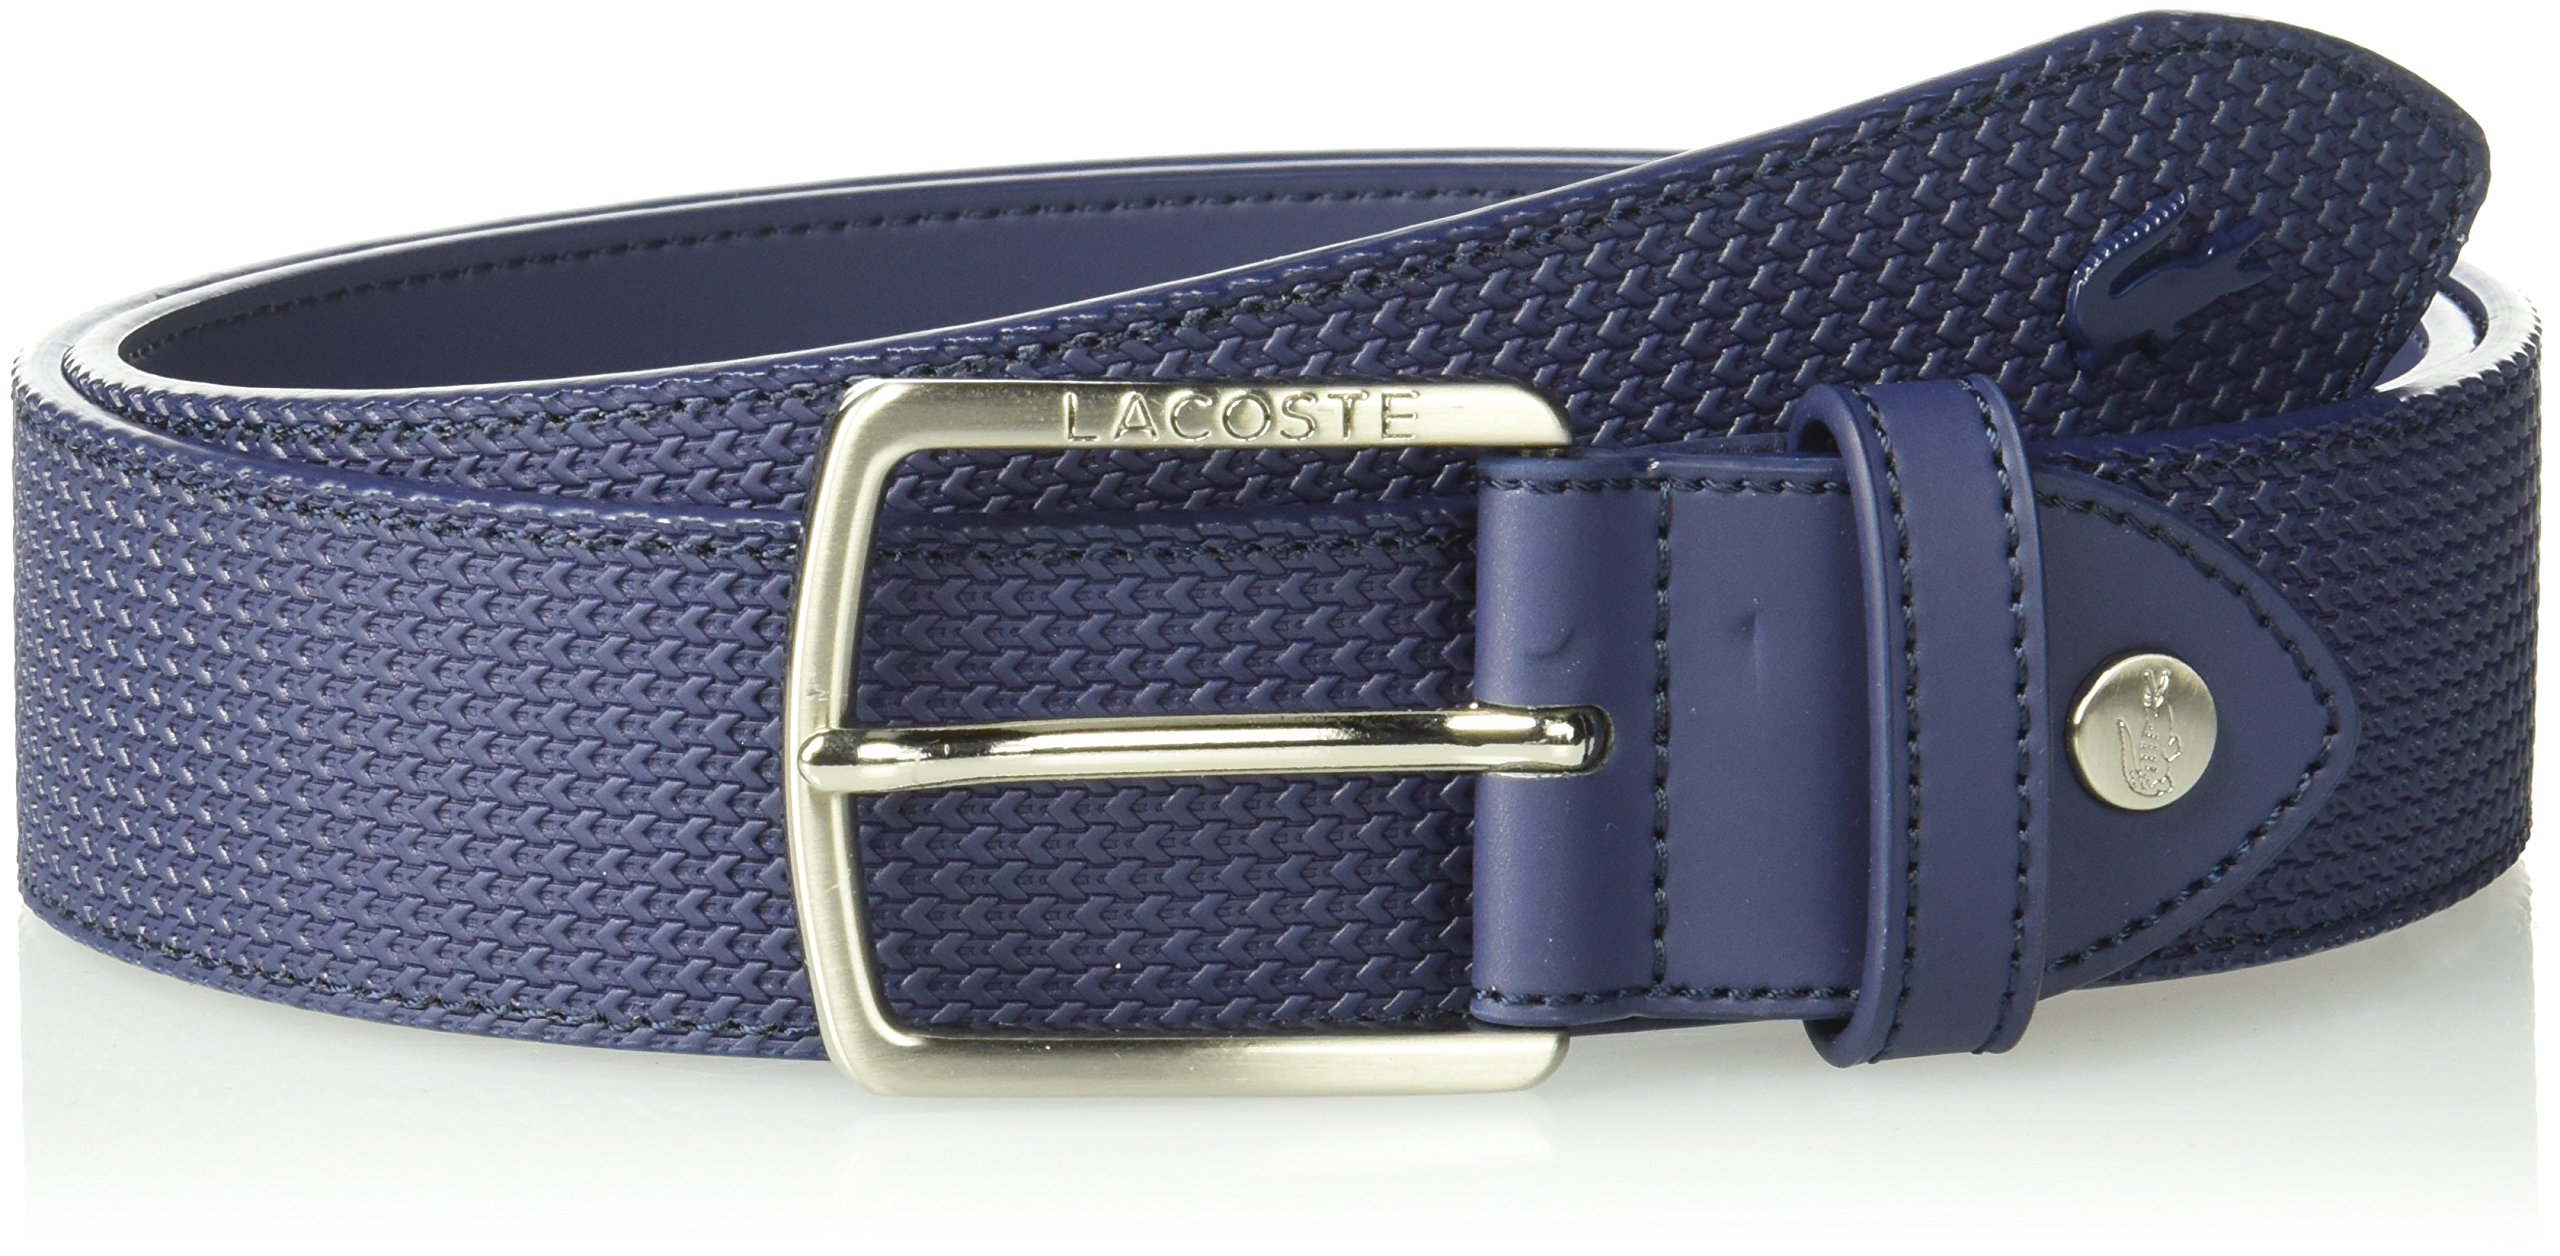 Lacoste Men's 35mm Stitched Raw Edges Belt, Peacoat, US 34/EU 85 by Lacoste (Image #1)